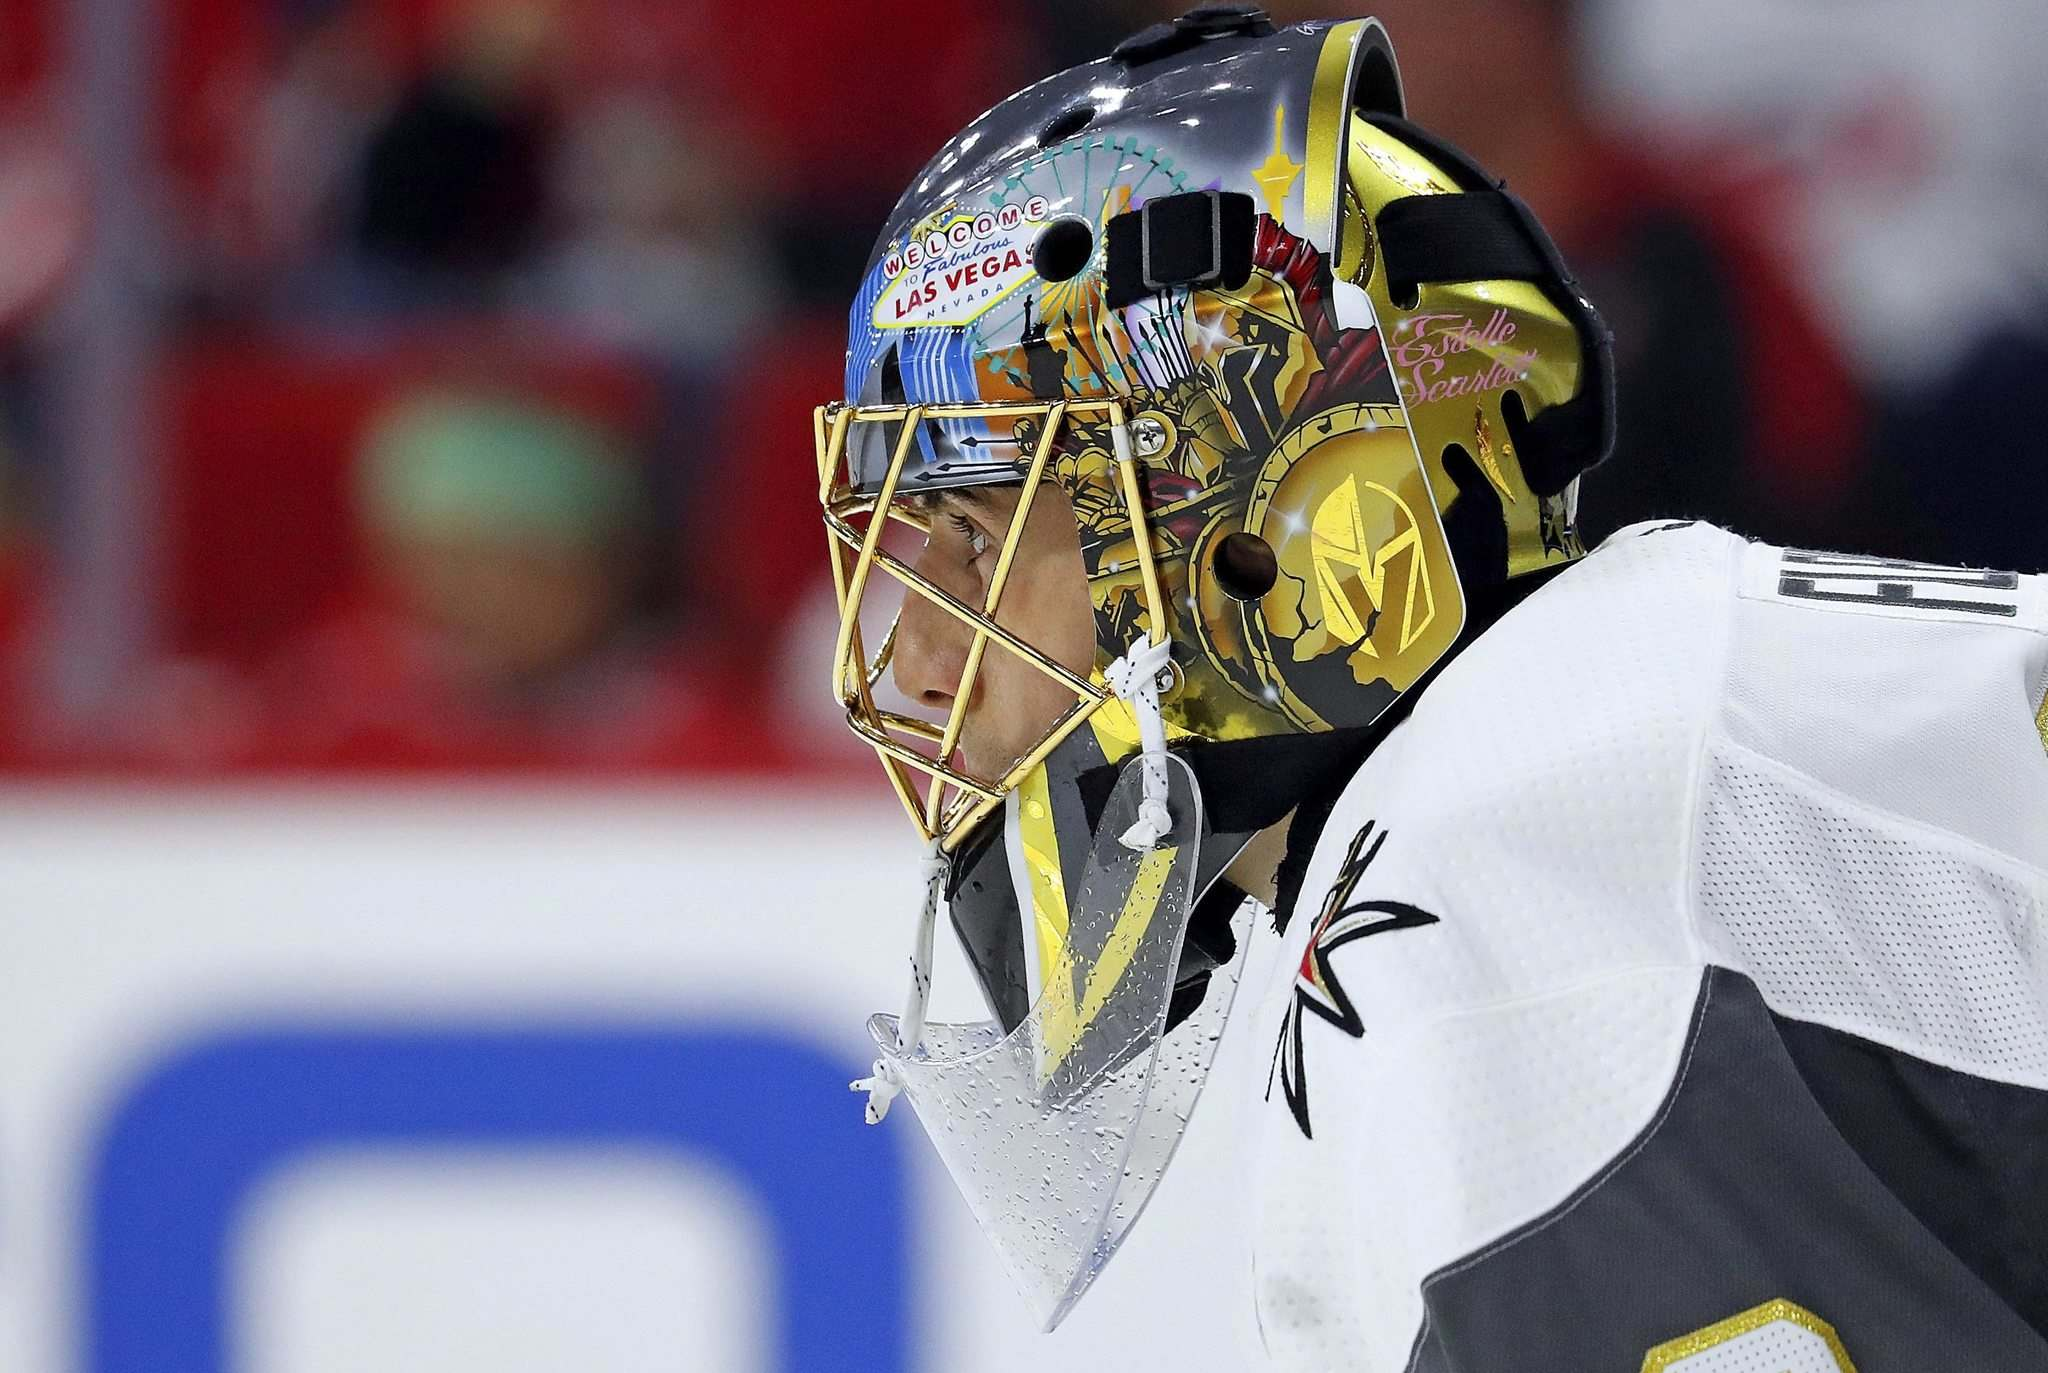 (AP Photo/Karl B DeBlaker)</p><p>Vegas Golden Knights goaltender Marc-Andre Fleury&#39;s teammates admire his positive disposition as much as his premier puckstopping abilities.</p>